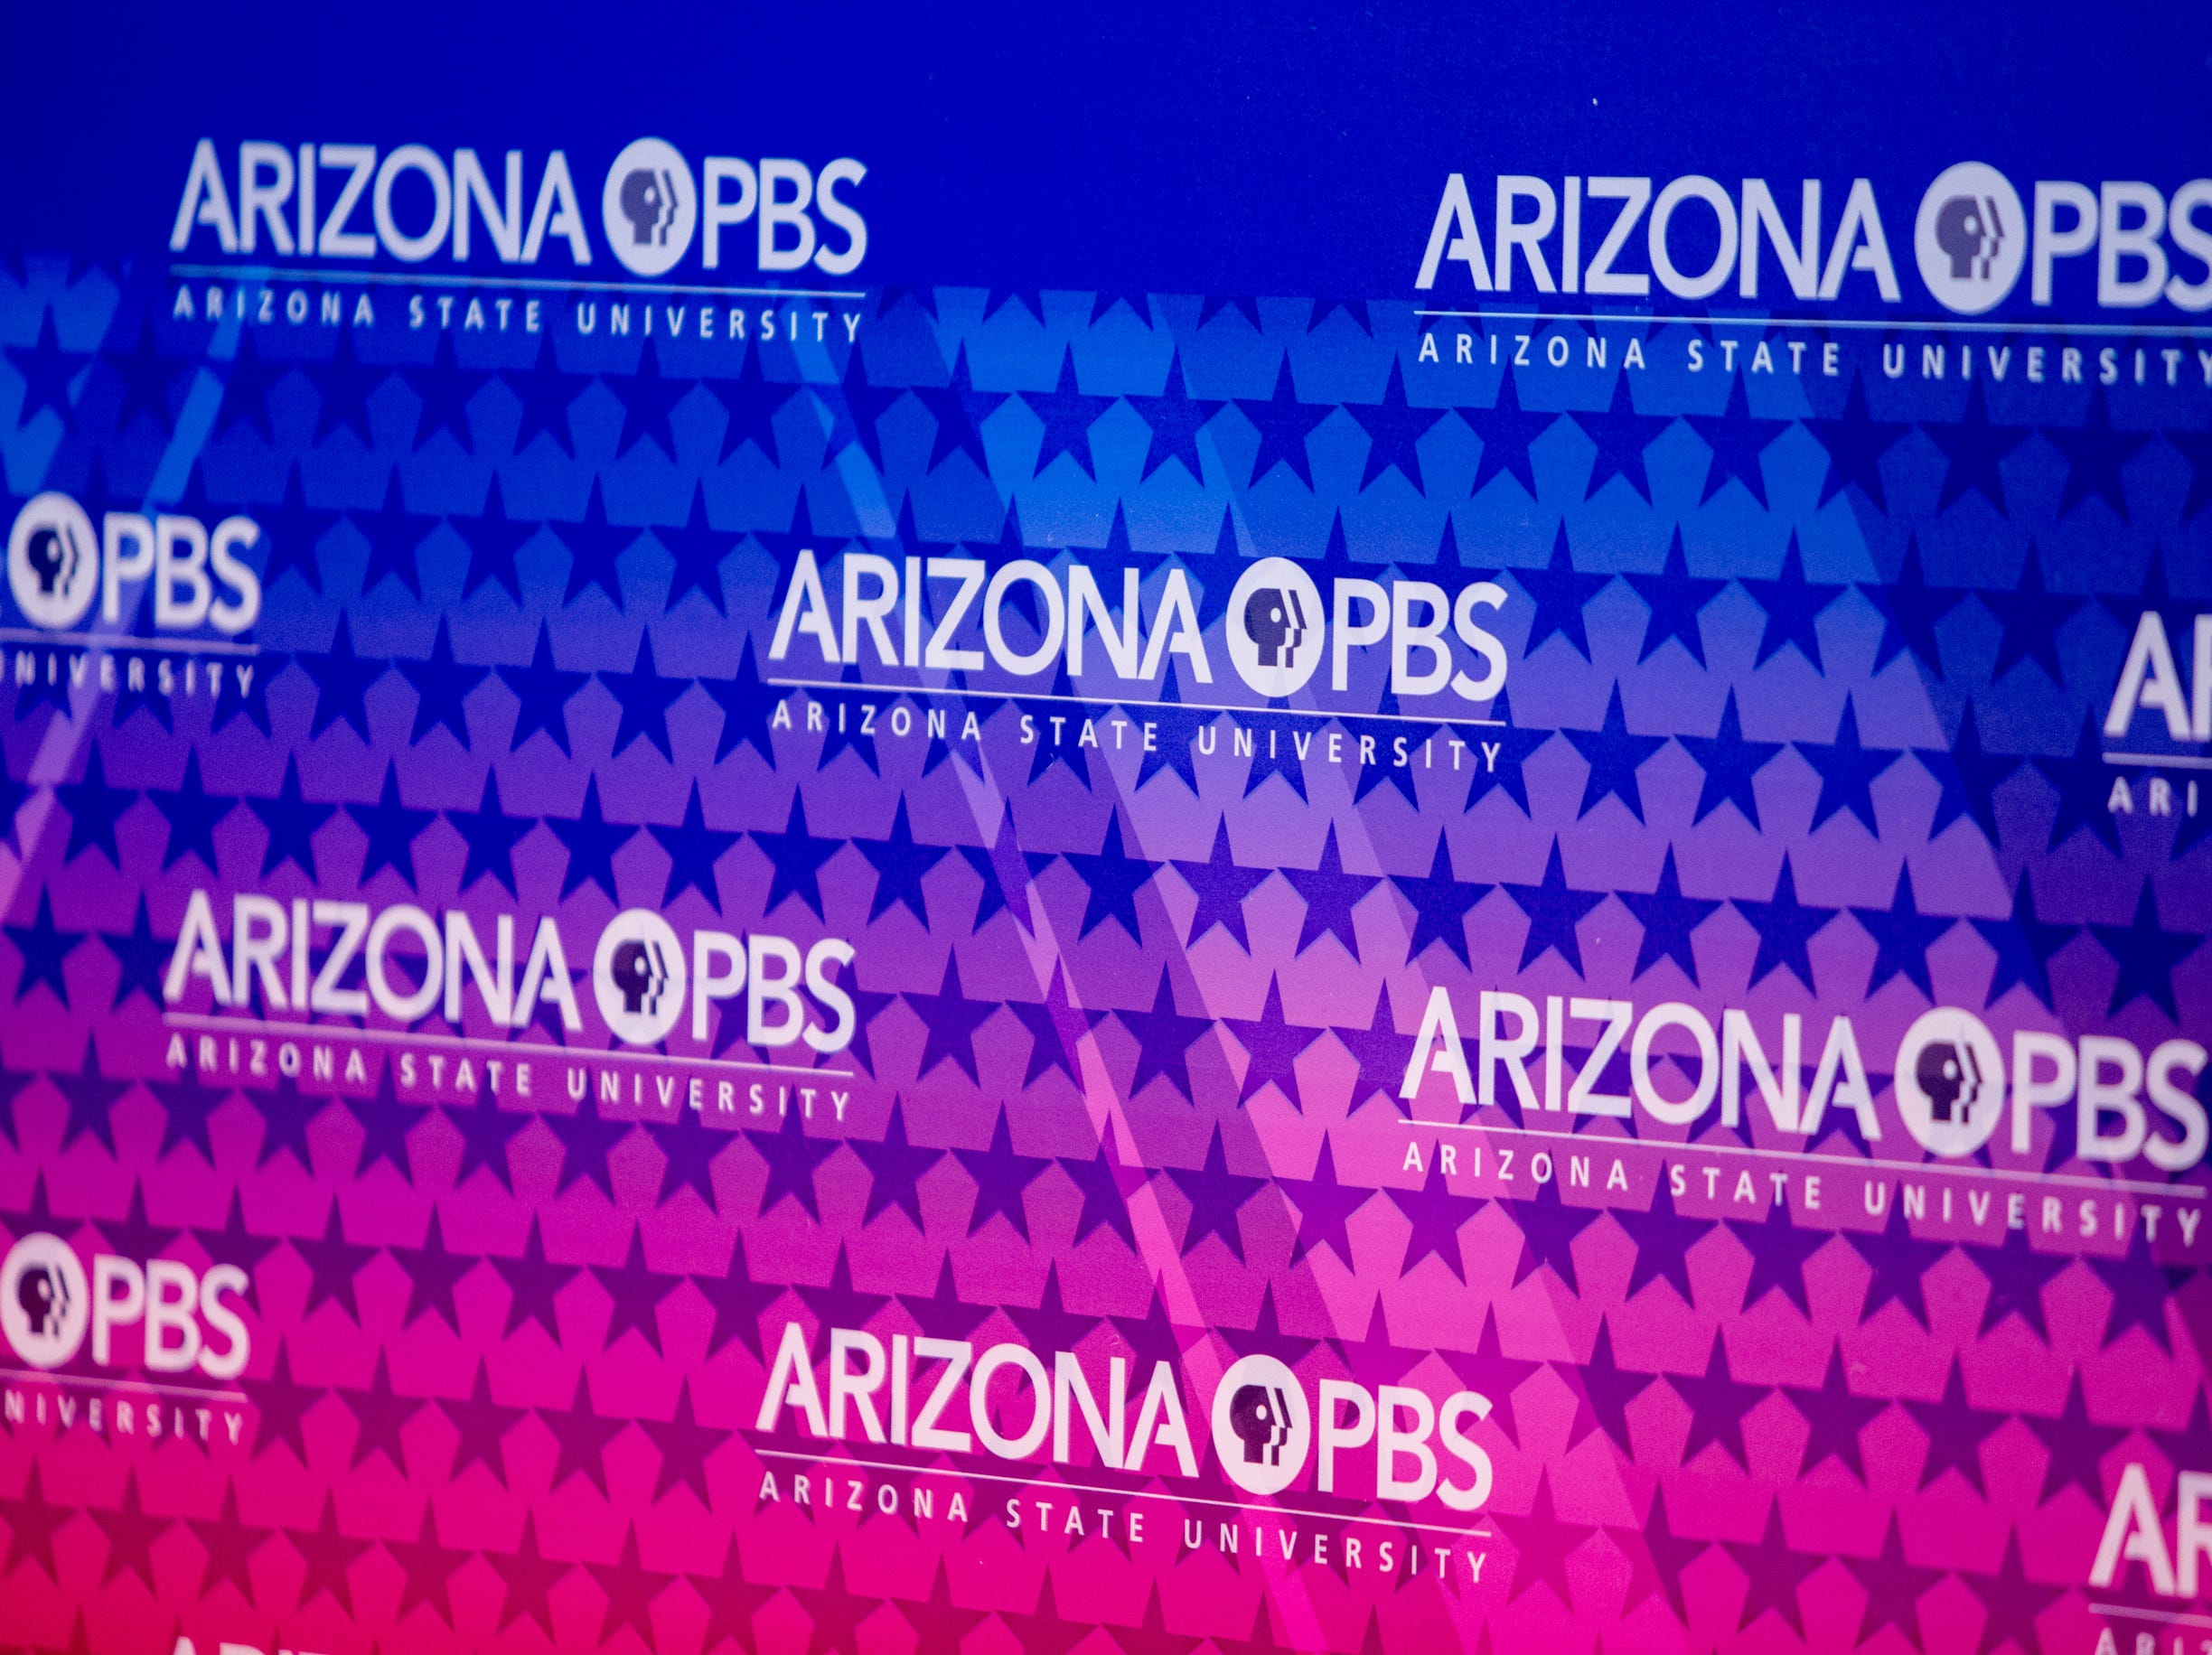 Arizona PBS and the Arizona Republic host a debate on July 31, 2018, during a debate among Democrats vying for Arizona governor at Arizona State University's Walter Cronkite School of Journalism in Phoenix, Arizona.